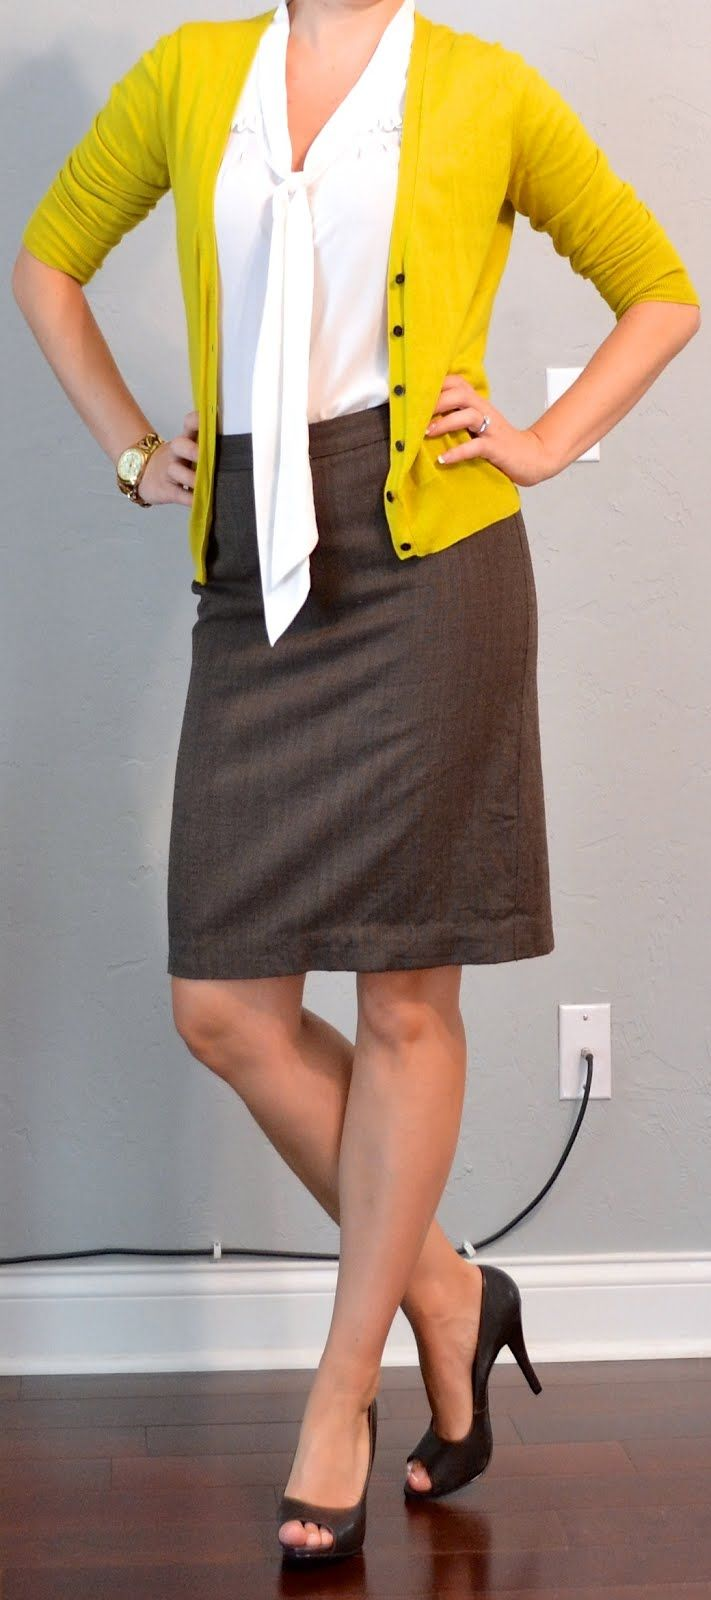 54 best Summary: Work Uniform - Pencil Skirts & Cardigan images on ...